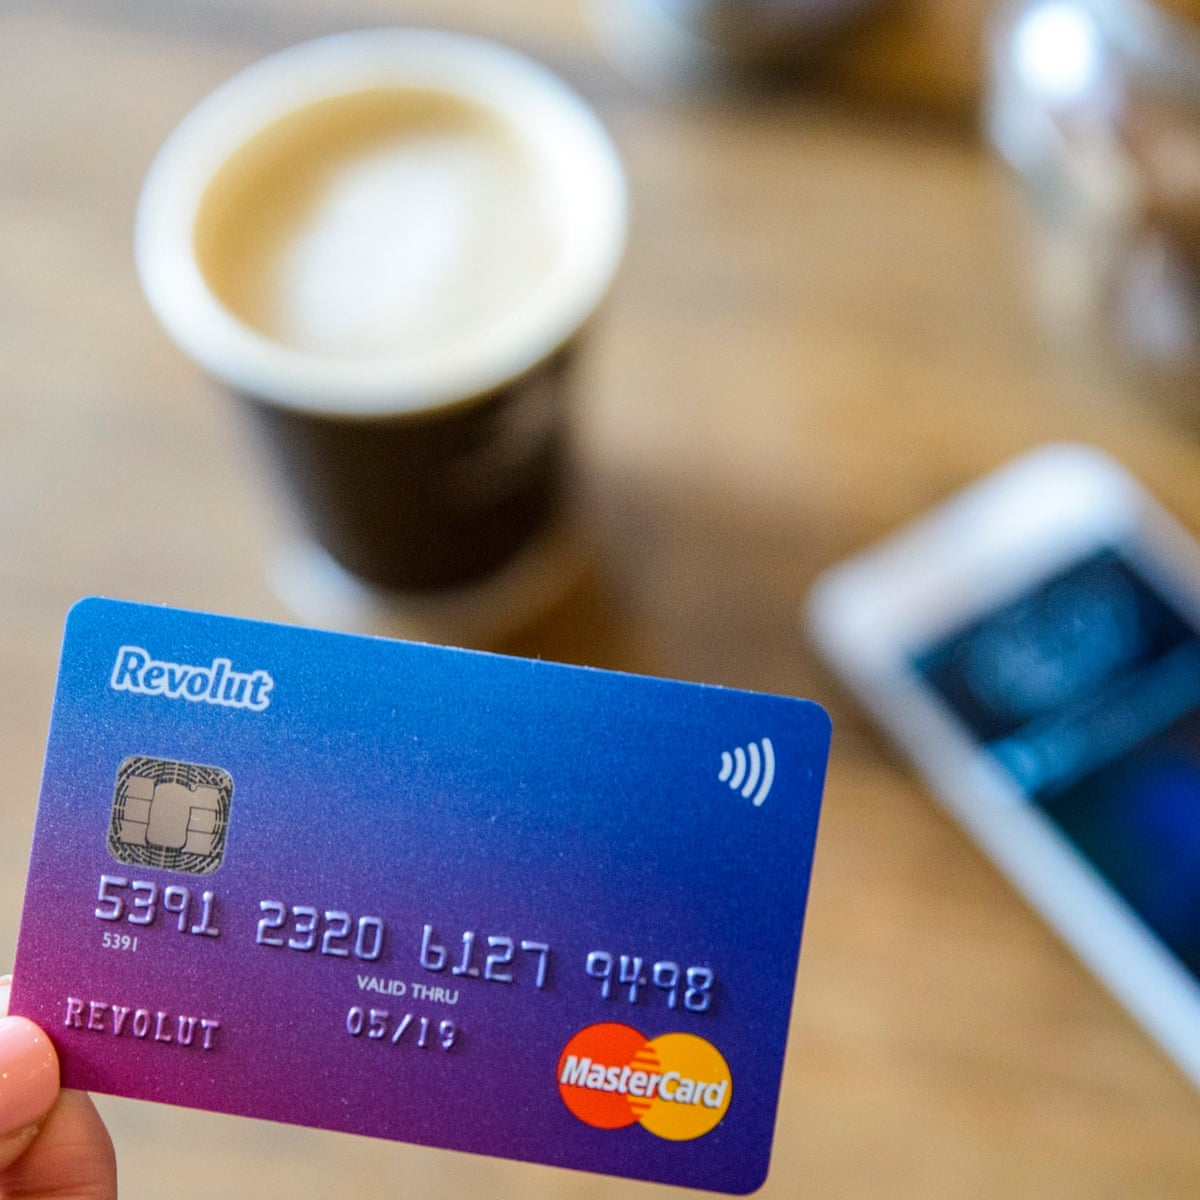 Digital bank Revolut becomes UK's most valuable fintech startup | Banking | The Guardian